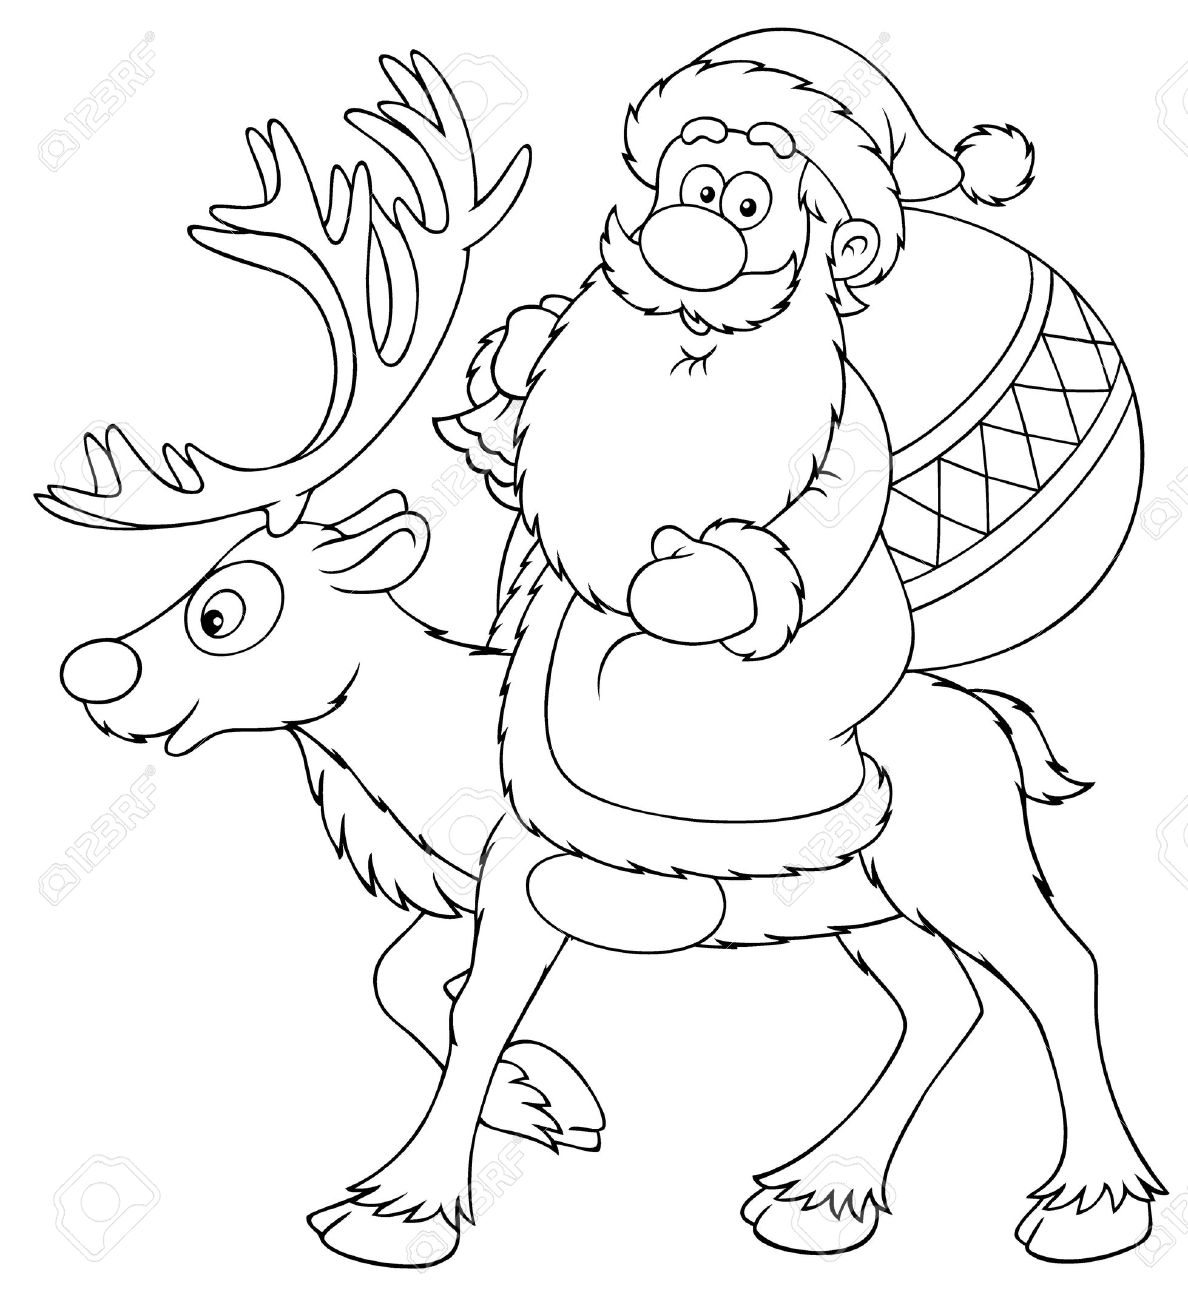 1188x1300 Santa Claus Riding On The Reindeer (Black And White Drawing) Stock